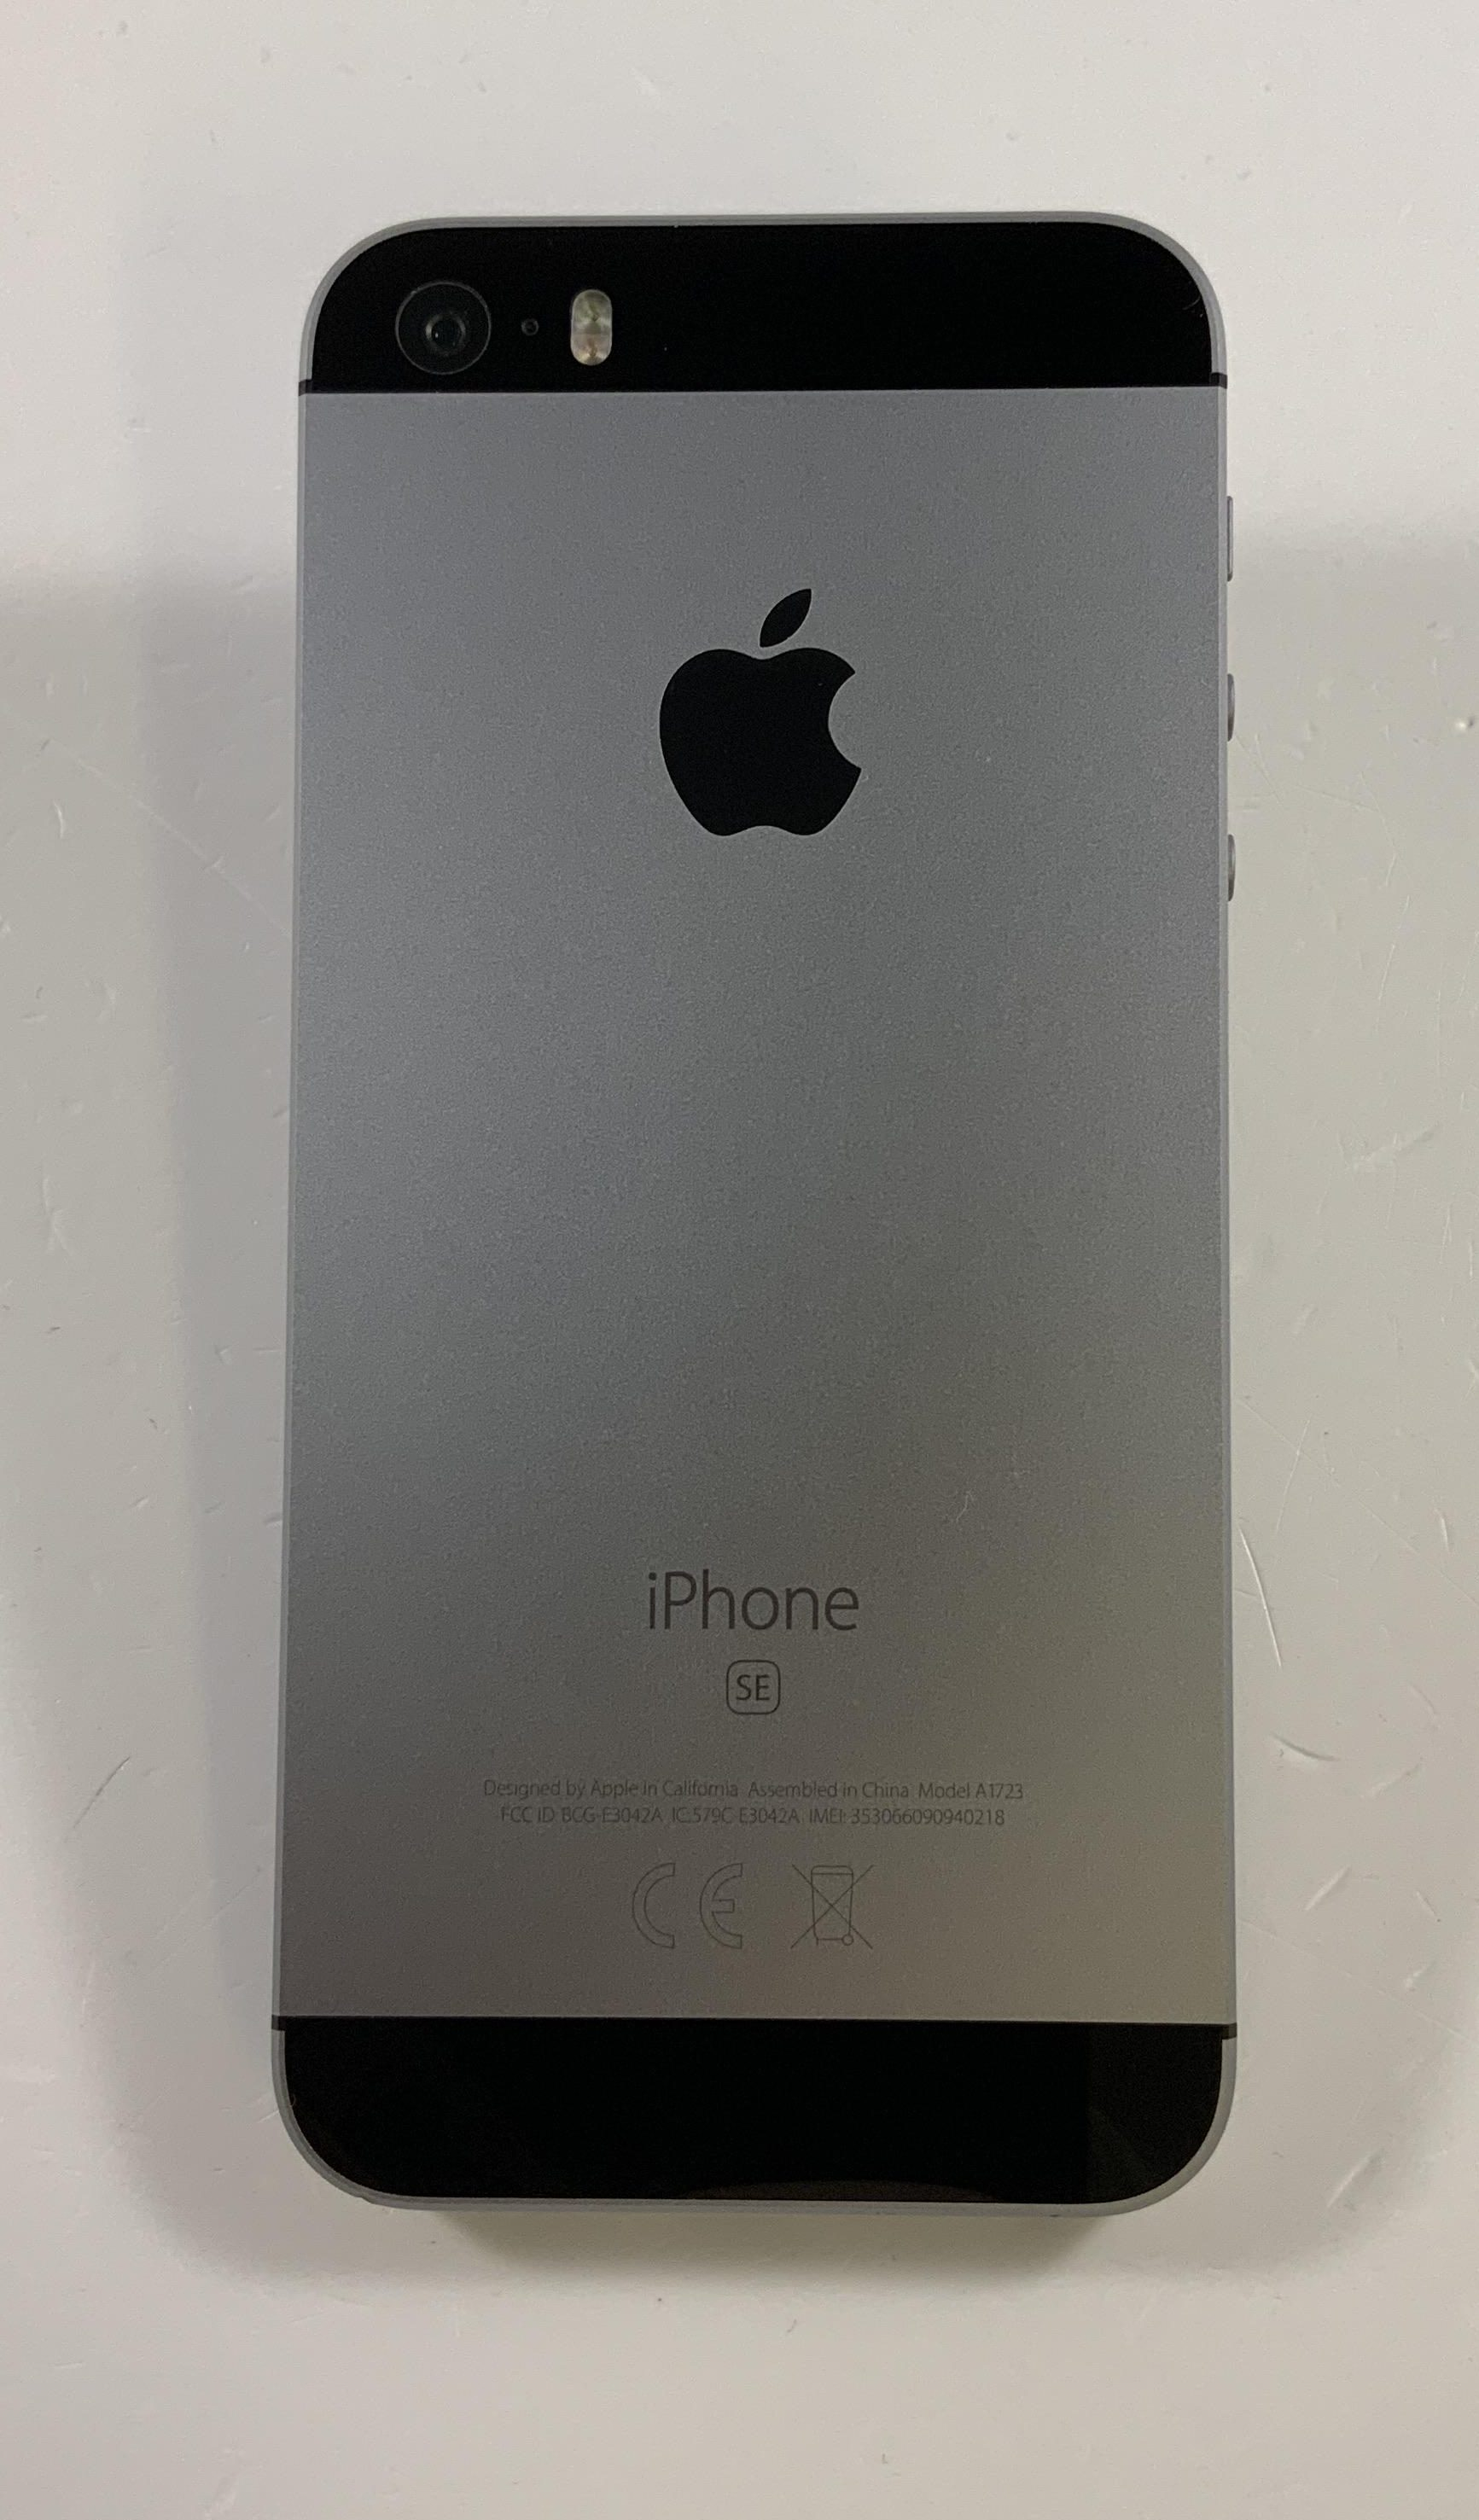 iPhone SE 32GB, 32GB, Space Gray, Bild 2